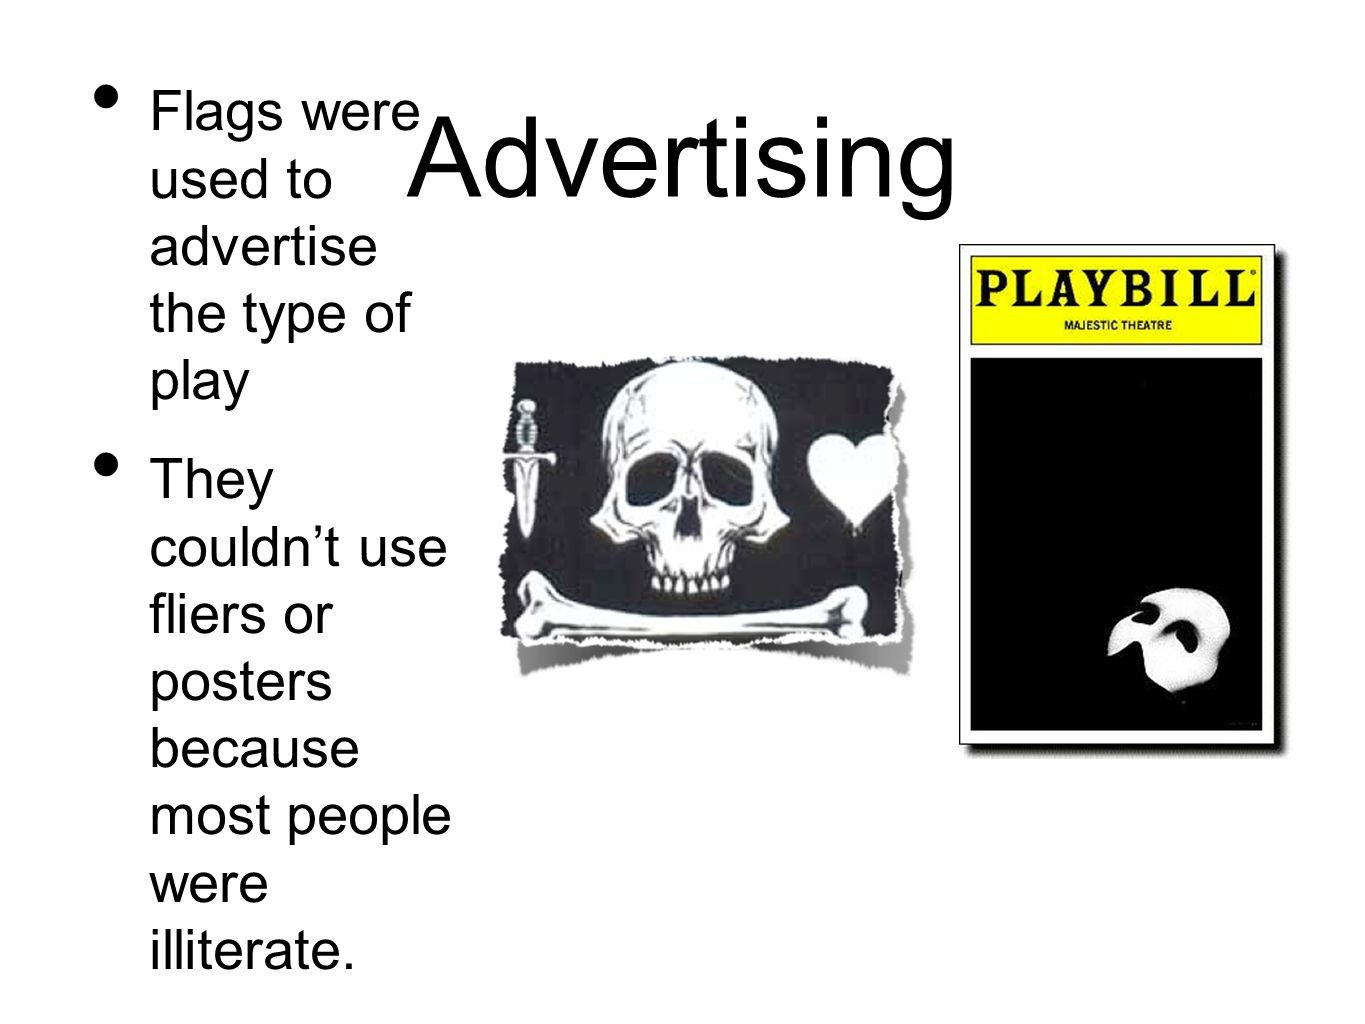 Advertising Flags were used to advertise the type of play